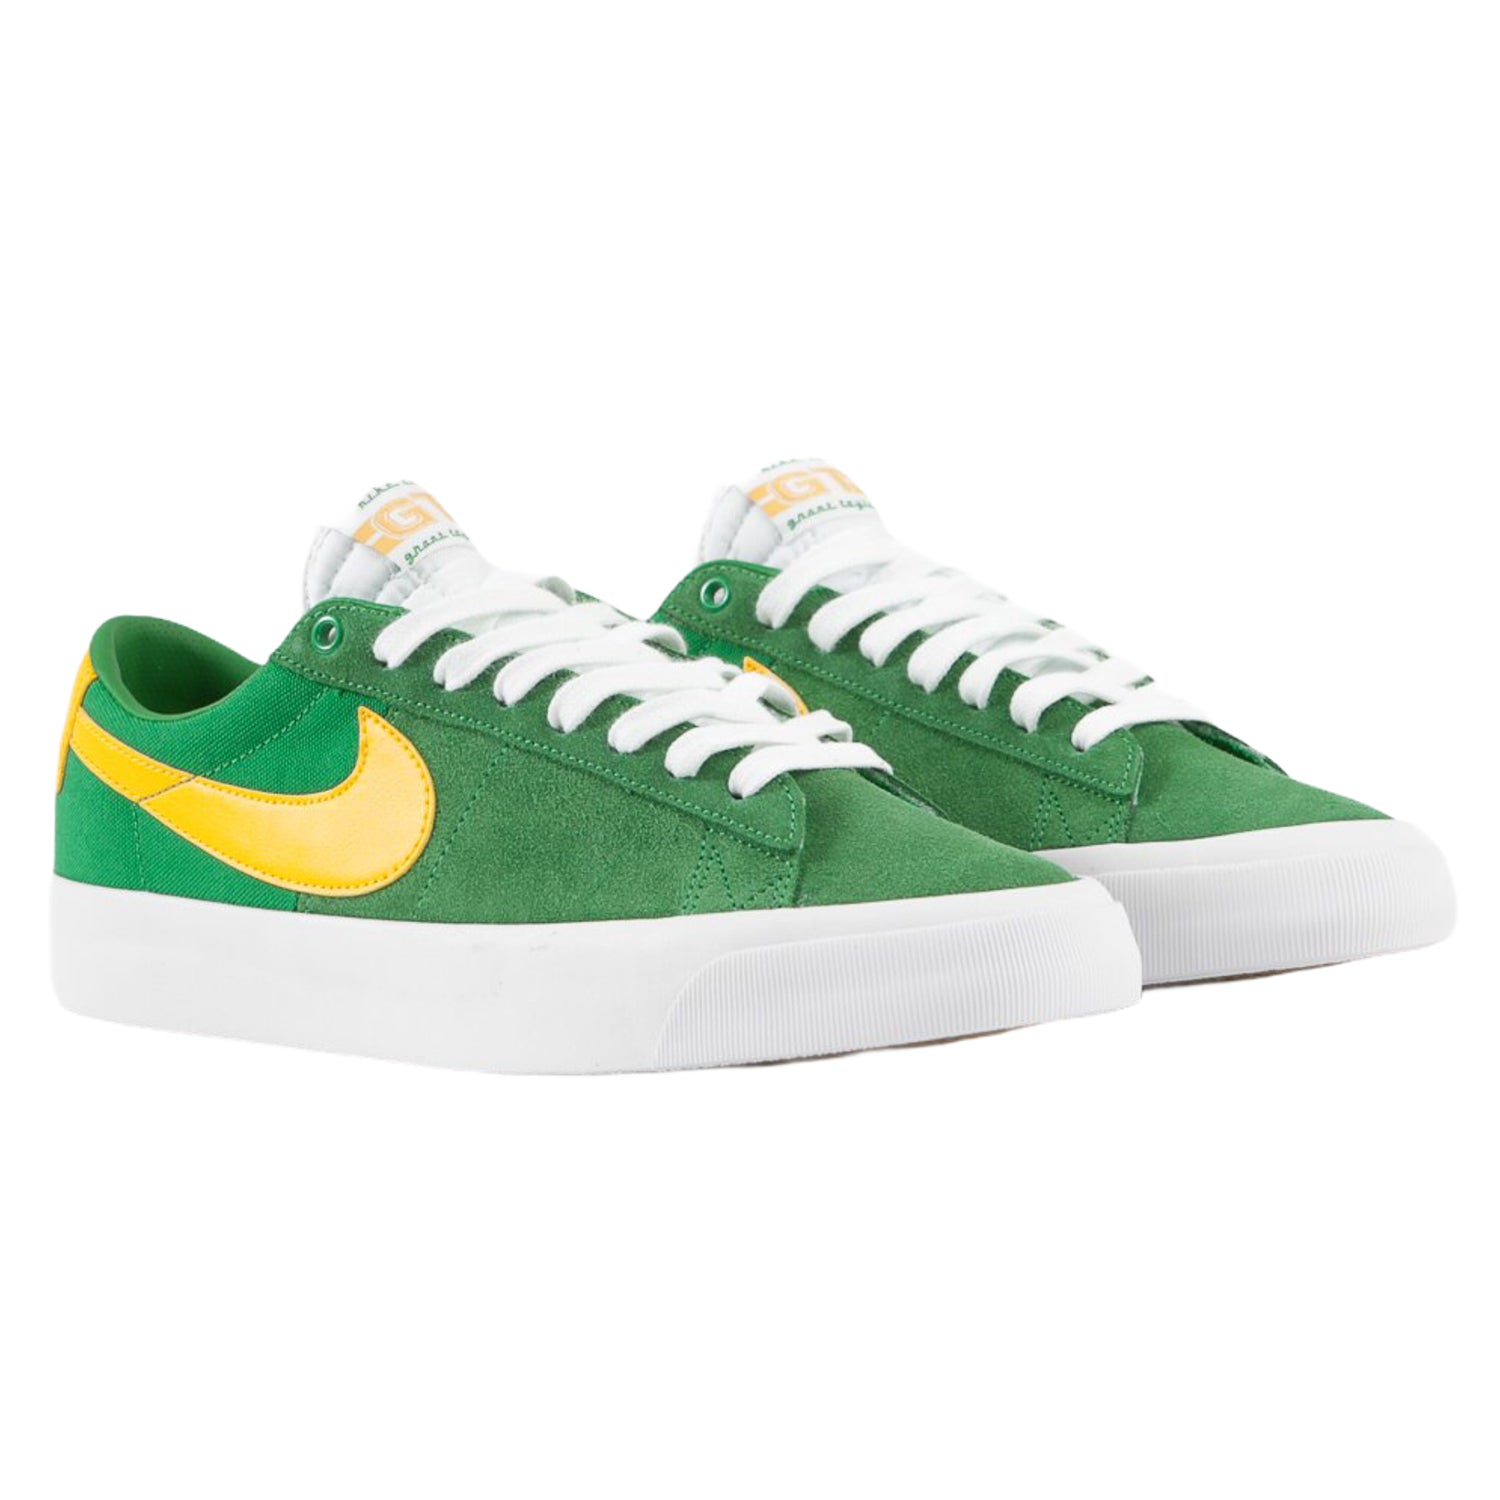 Nike SB Blazer Low Pro GT Lucky Green/University Gold